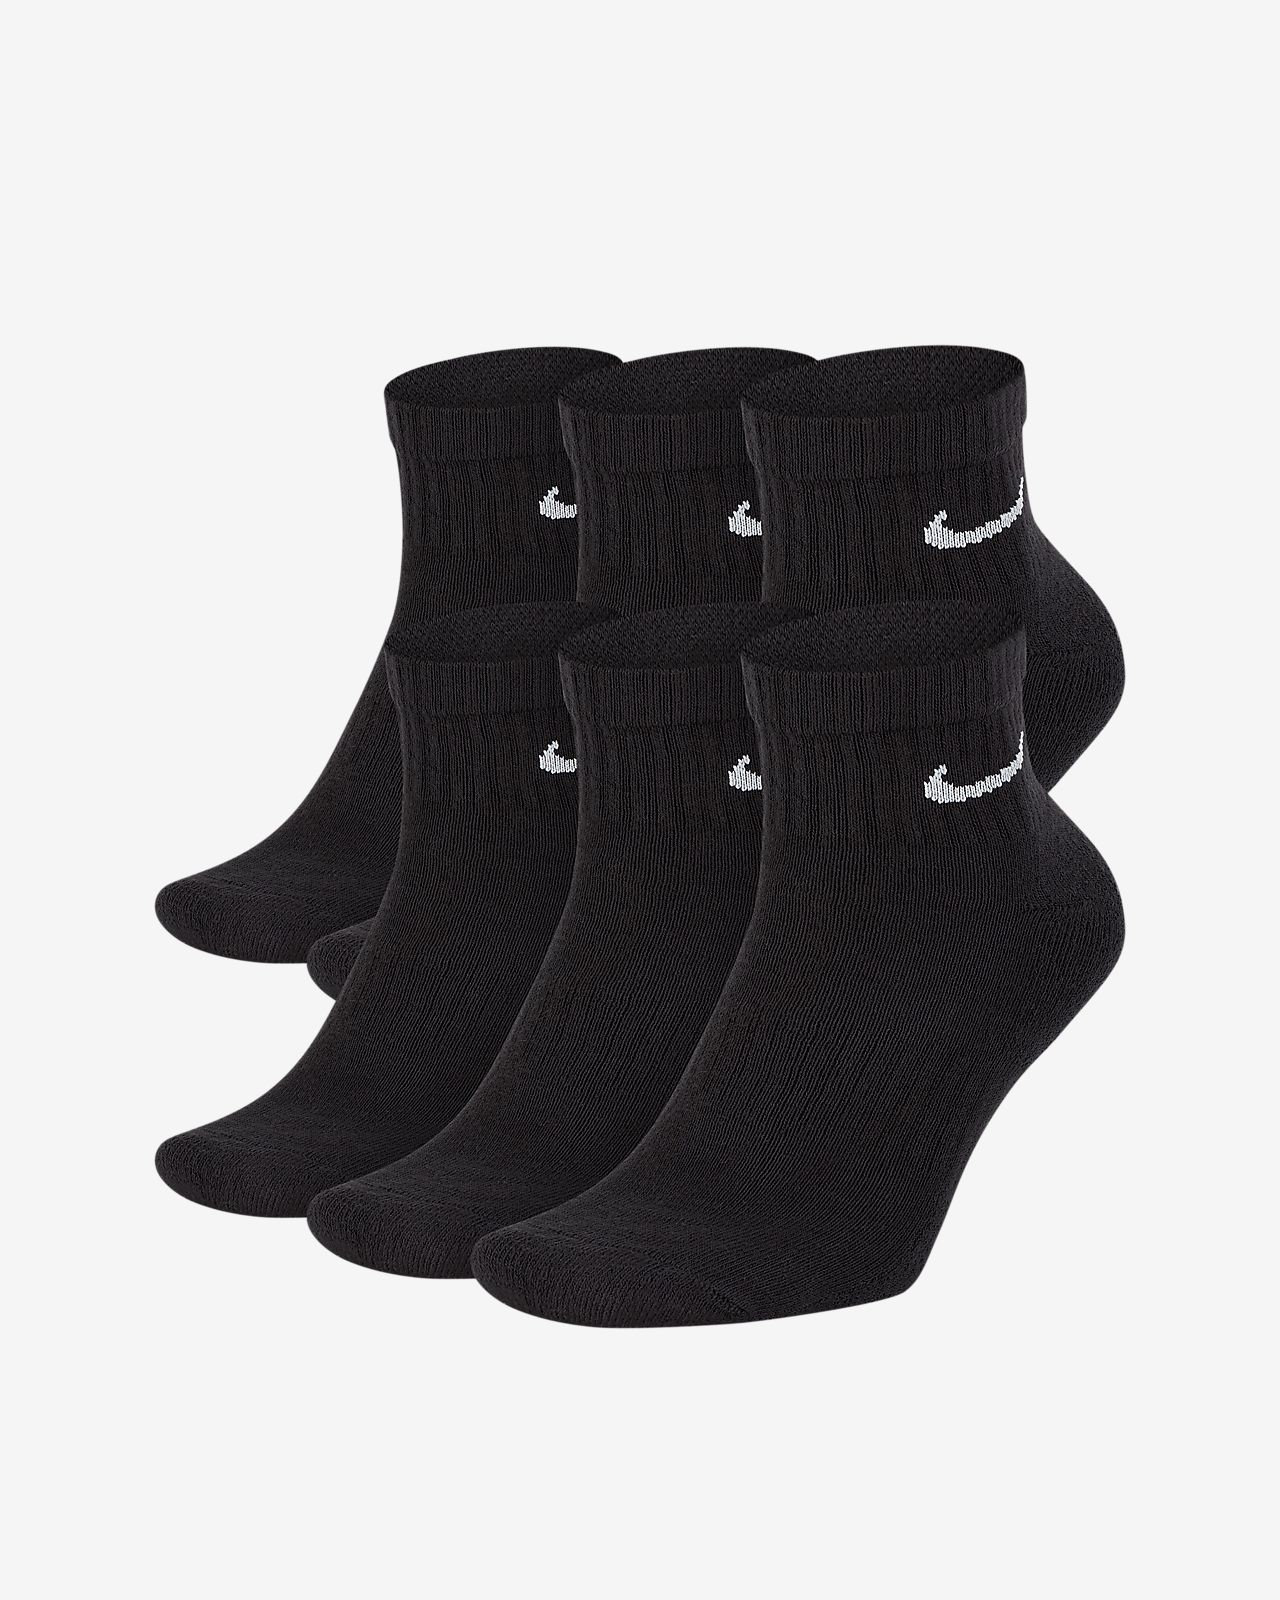 Nike Everyday Cushioned Training Ankle Socks (6 Pairs)